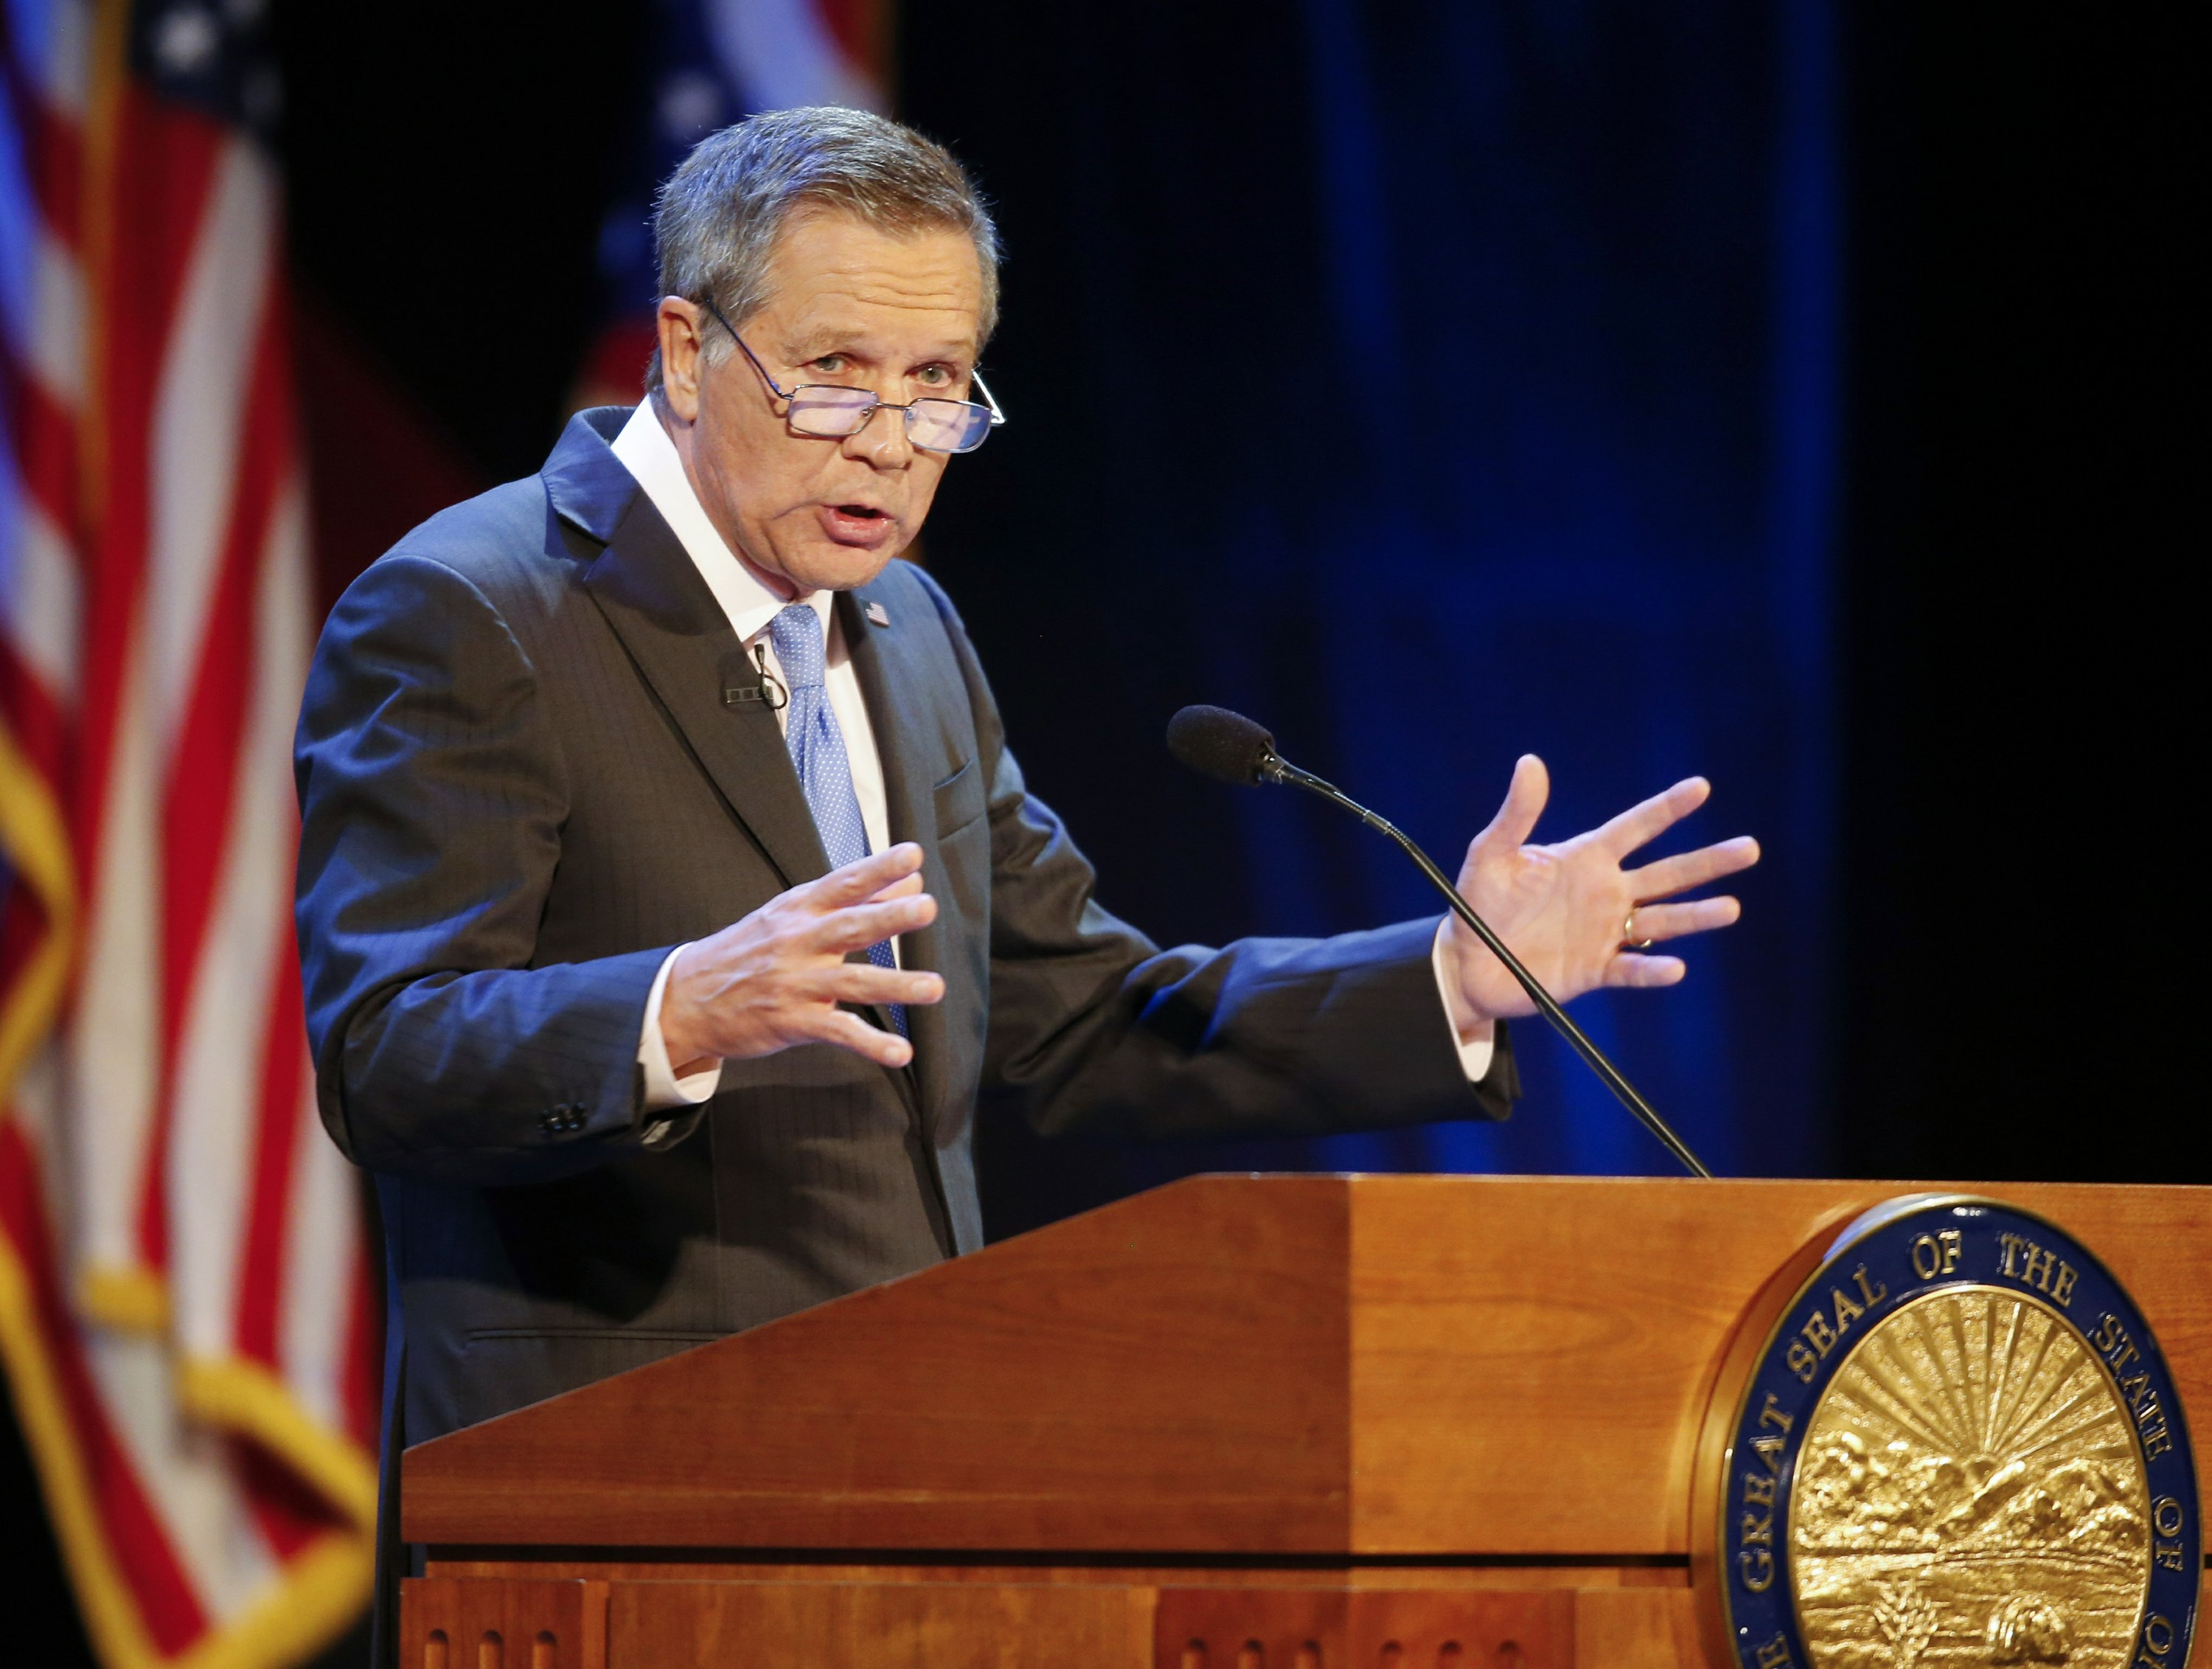 Governors wary of Medicaid cost shift in Senate health bill